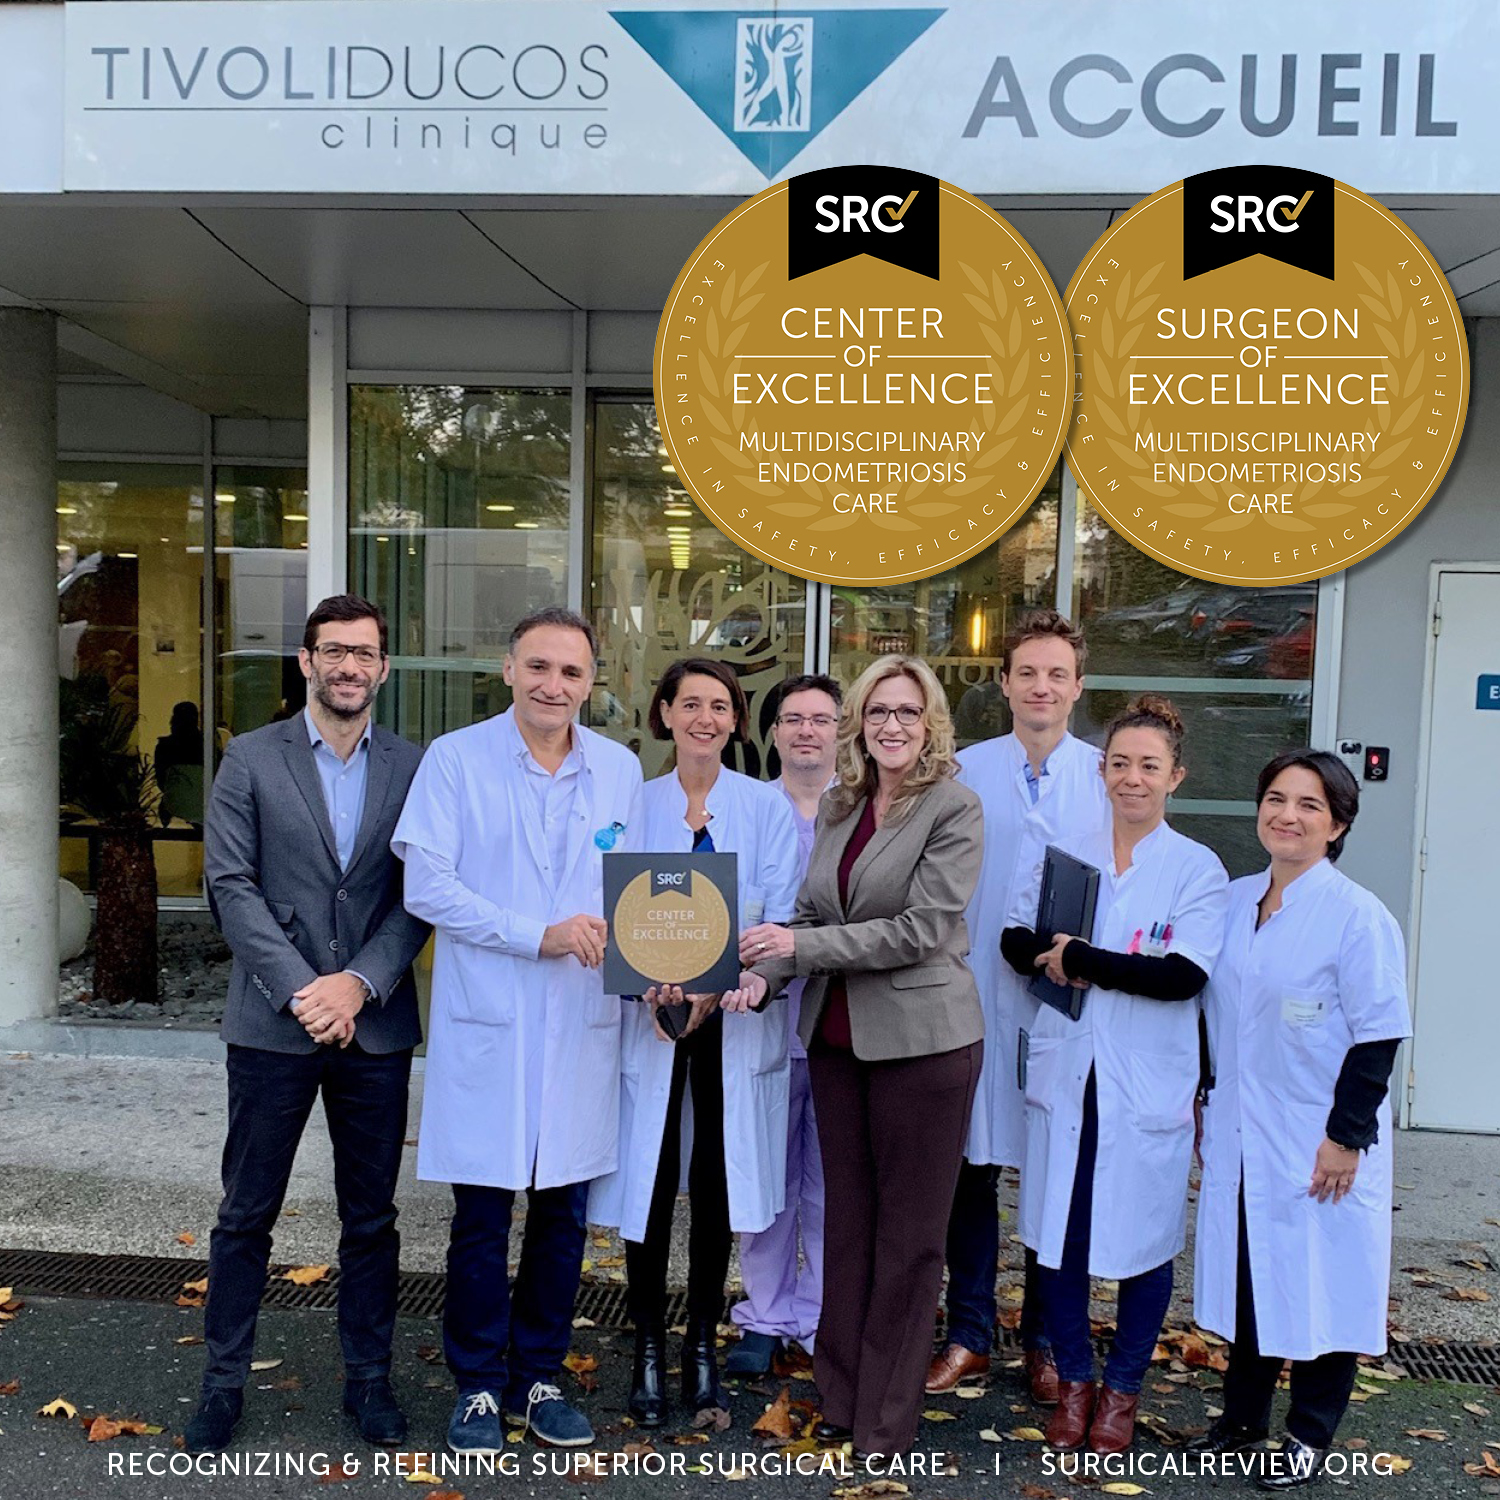 Clinique Tivoli-Ducos in Bordeaux, France is now SRC accredited